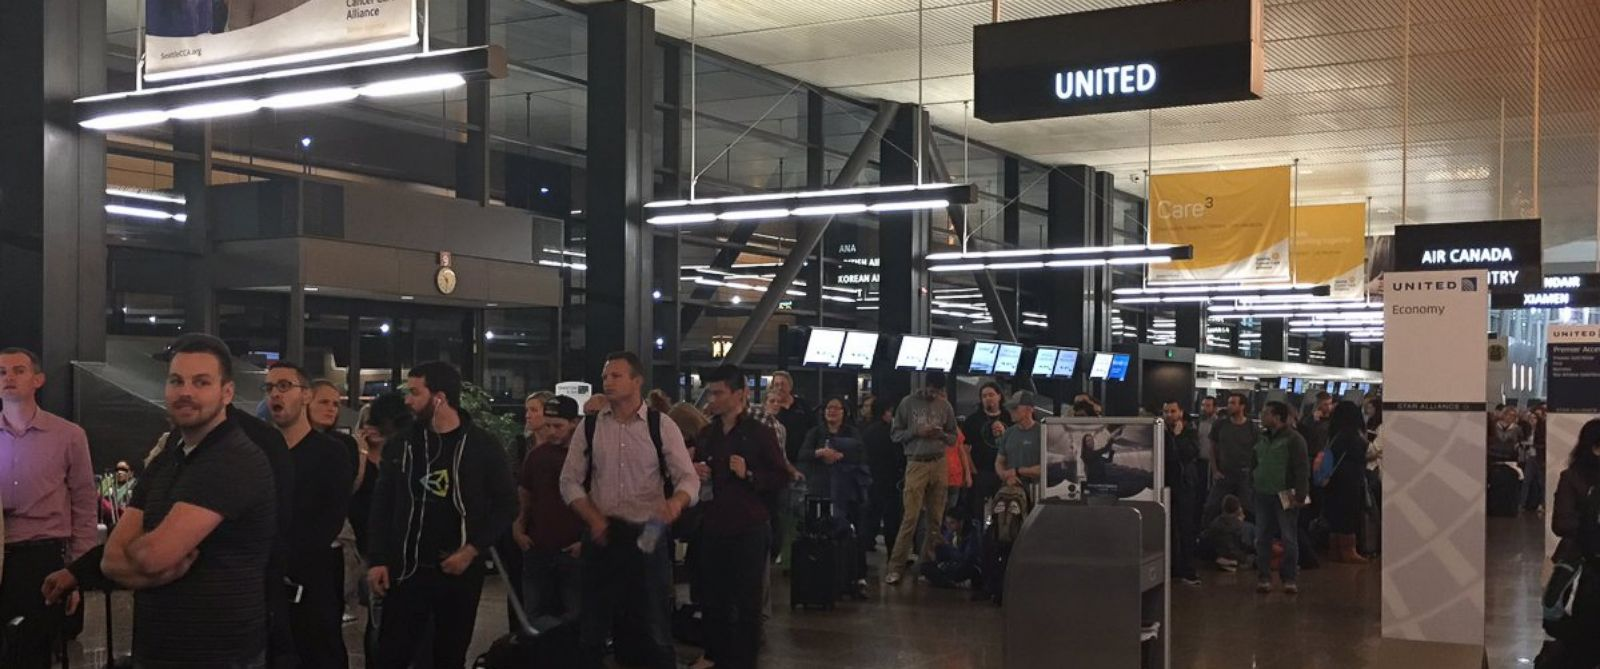 PHOTO: A systemwide computer glitch led to long lines at United Airlines counters across the country, including Seattle-Tacoma International Airport.